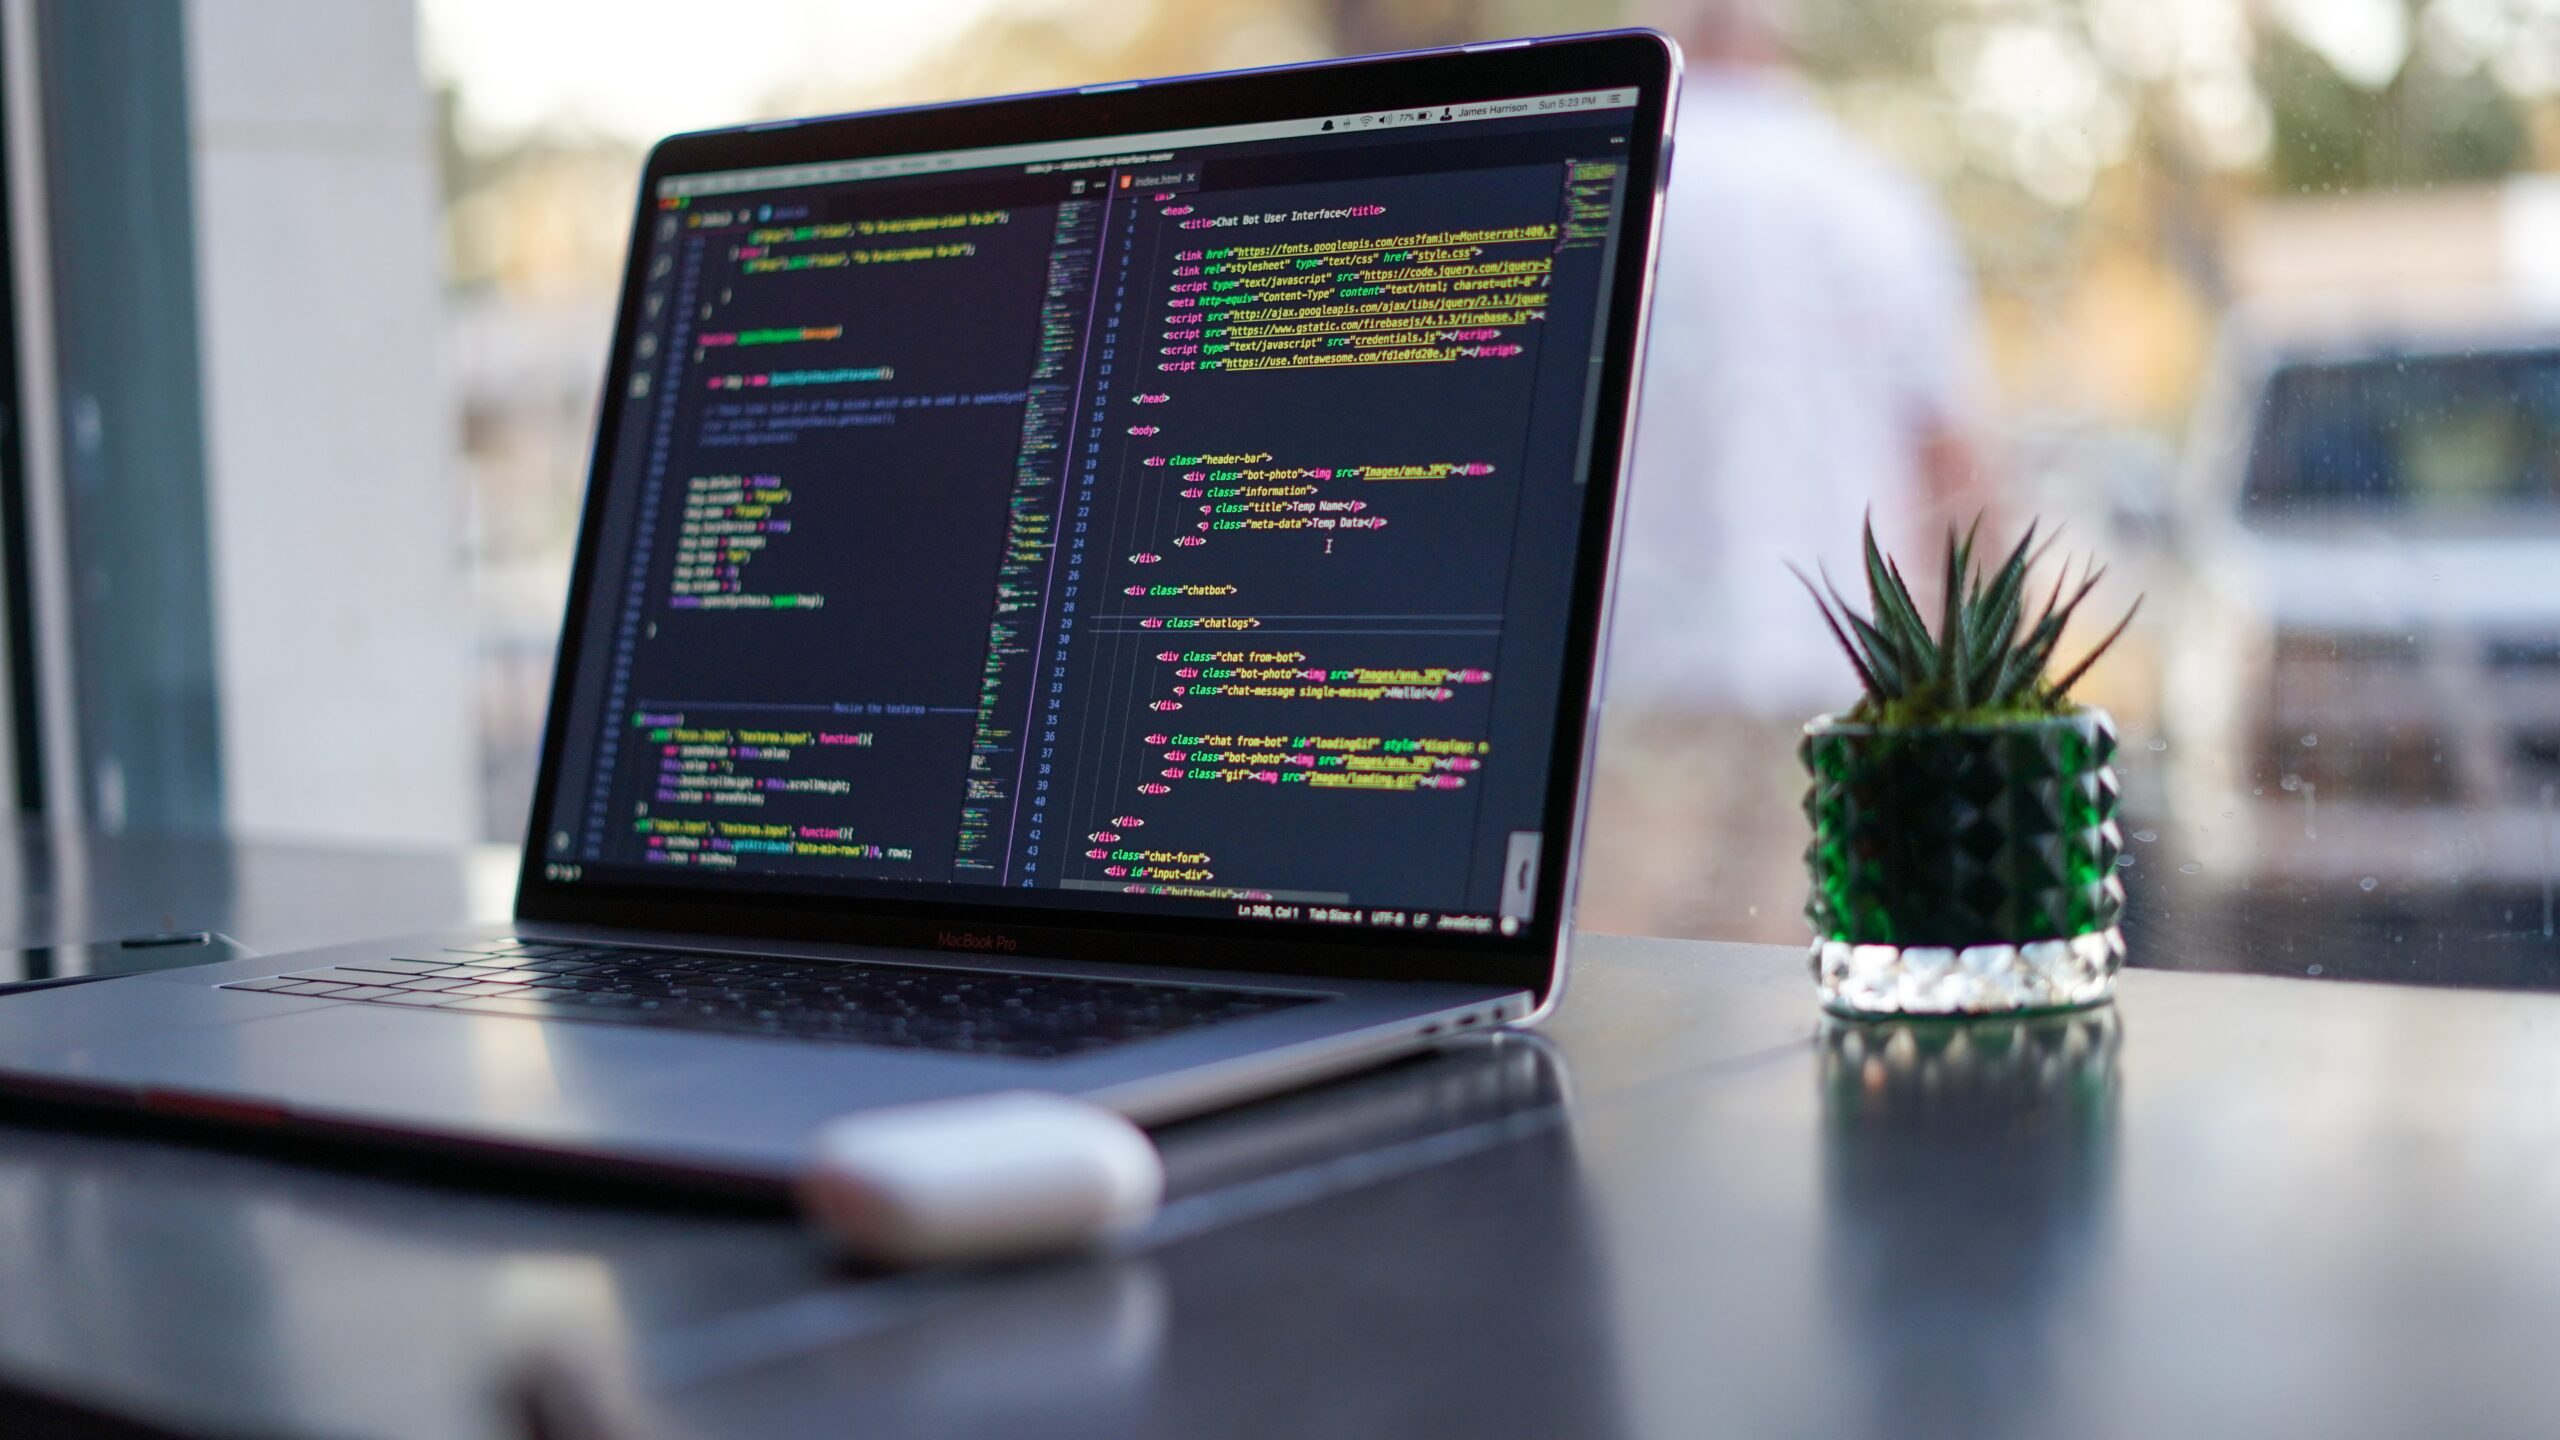 api allows greater interaction between software, and encourages innovation